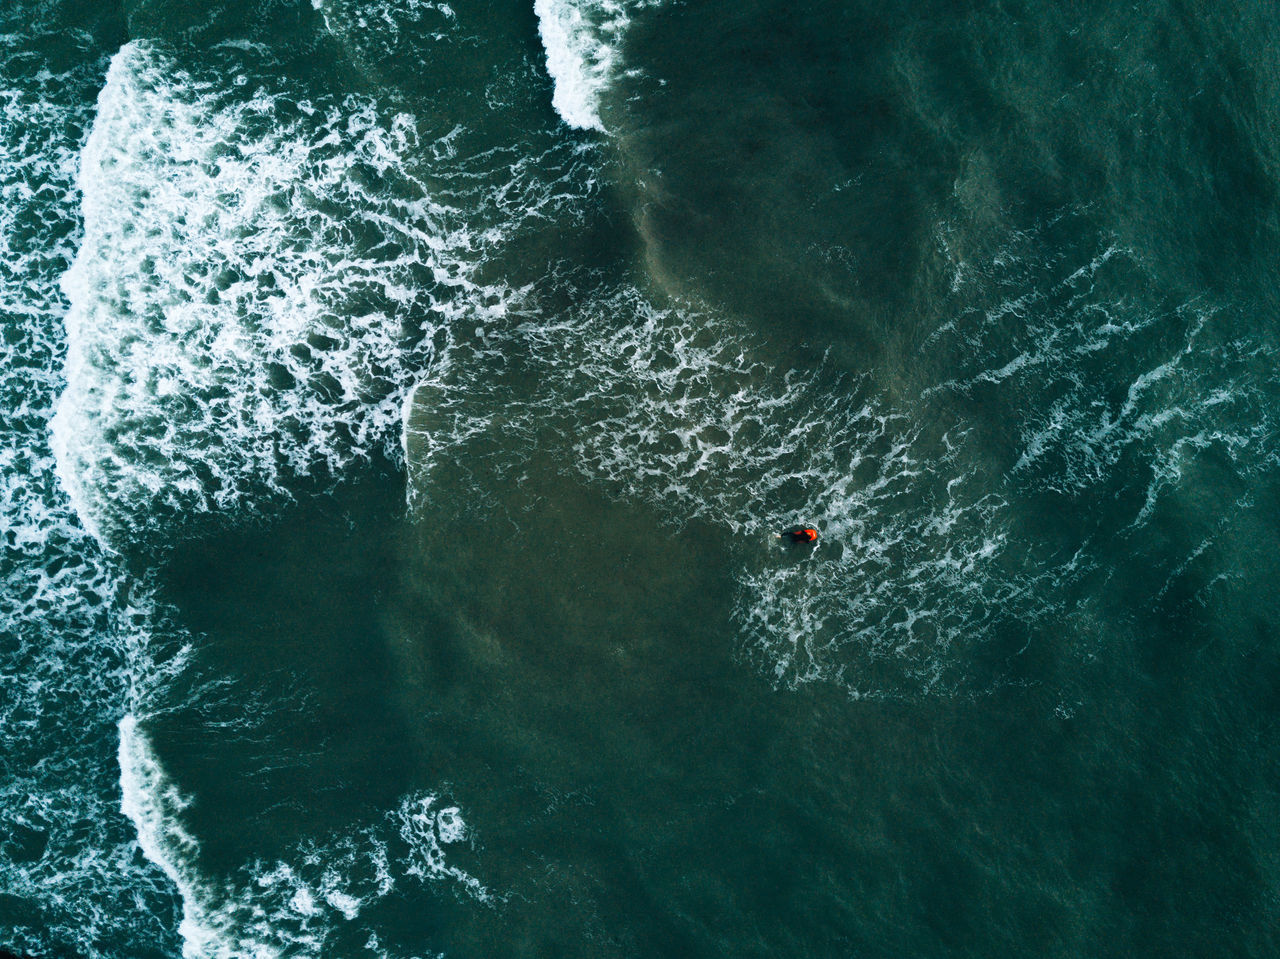 Aerial image of beach and water with waves and surfer Beauty In Nature Day High Angle View Motion Nature One Person Outdoors People Real People Sea Swimming Wake - Water Water Waterfront Wave